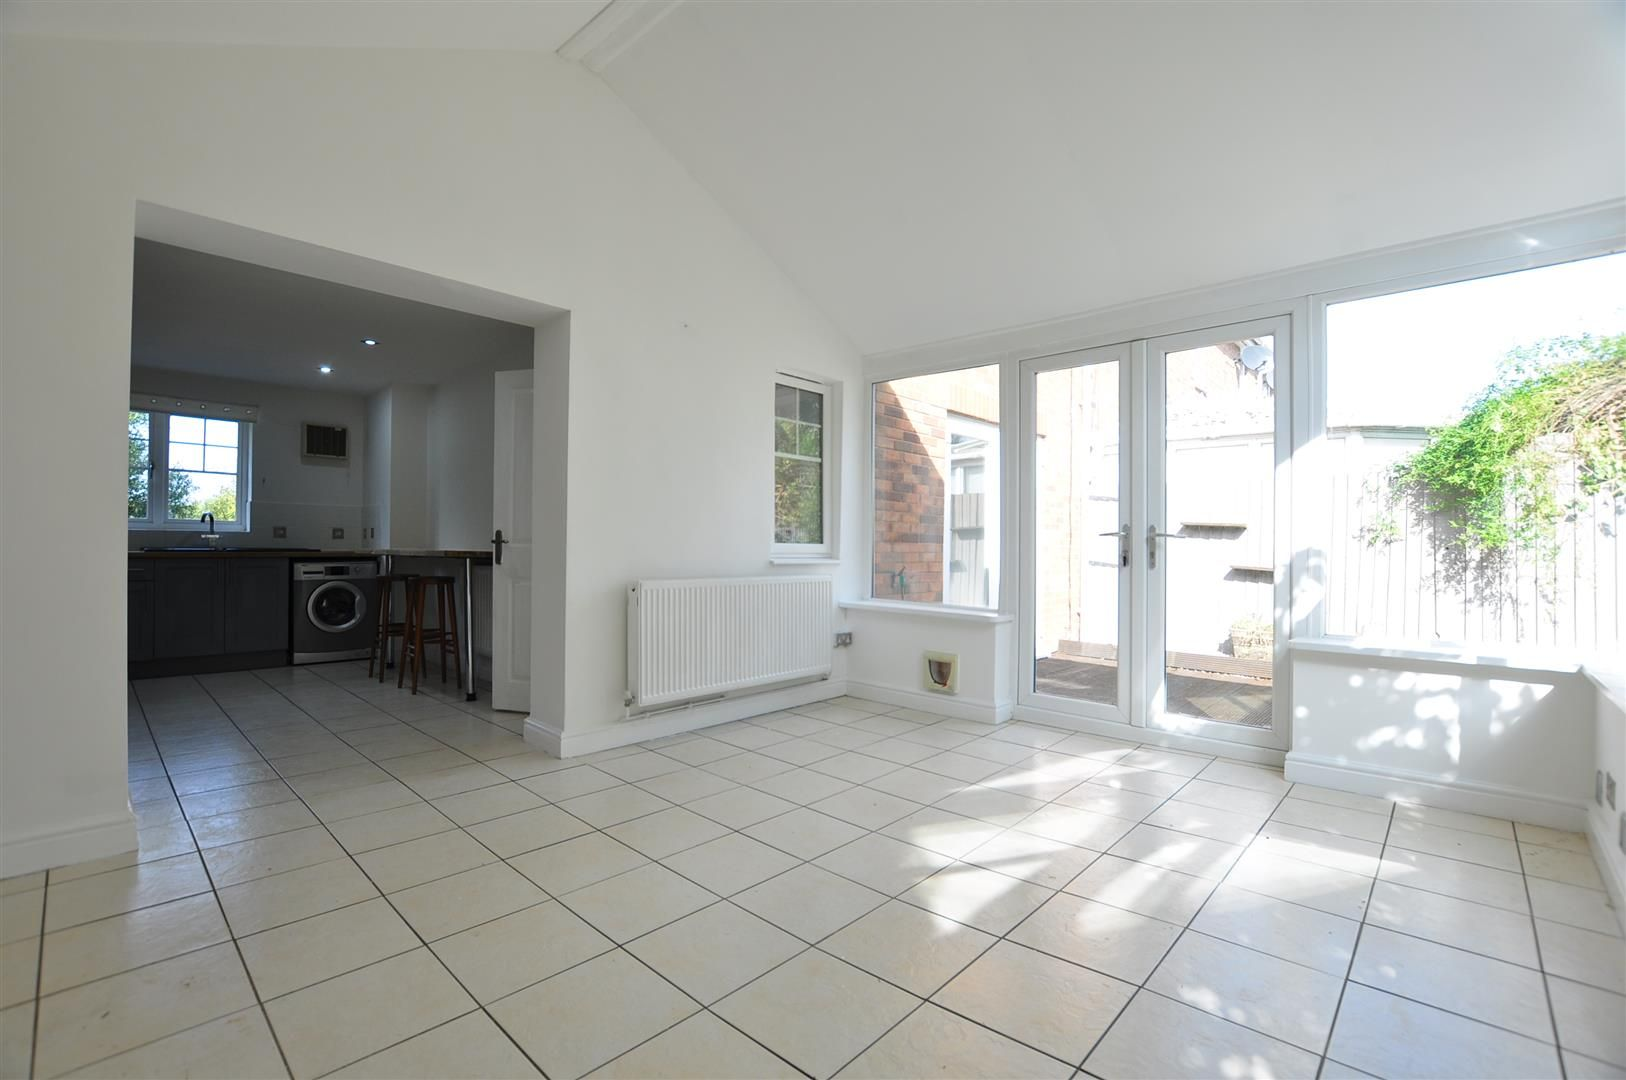 3 bed town-house for sale 8